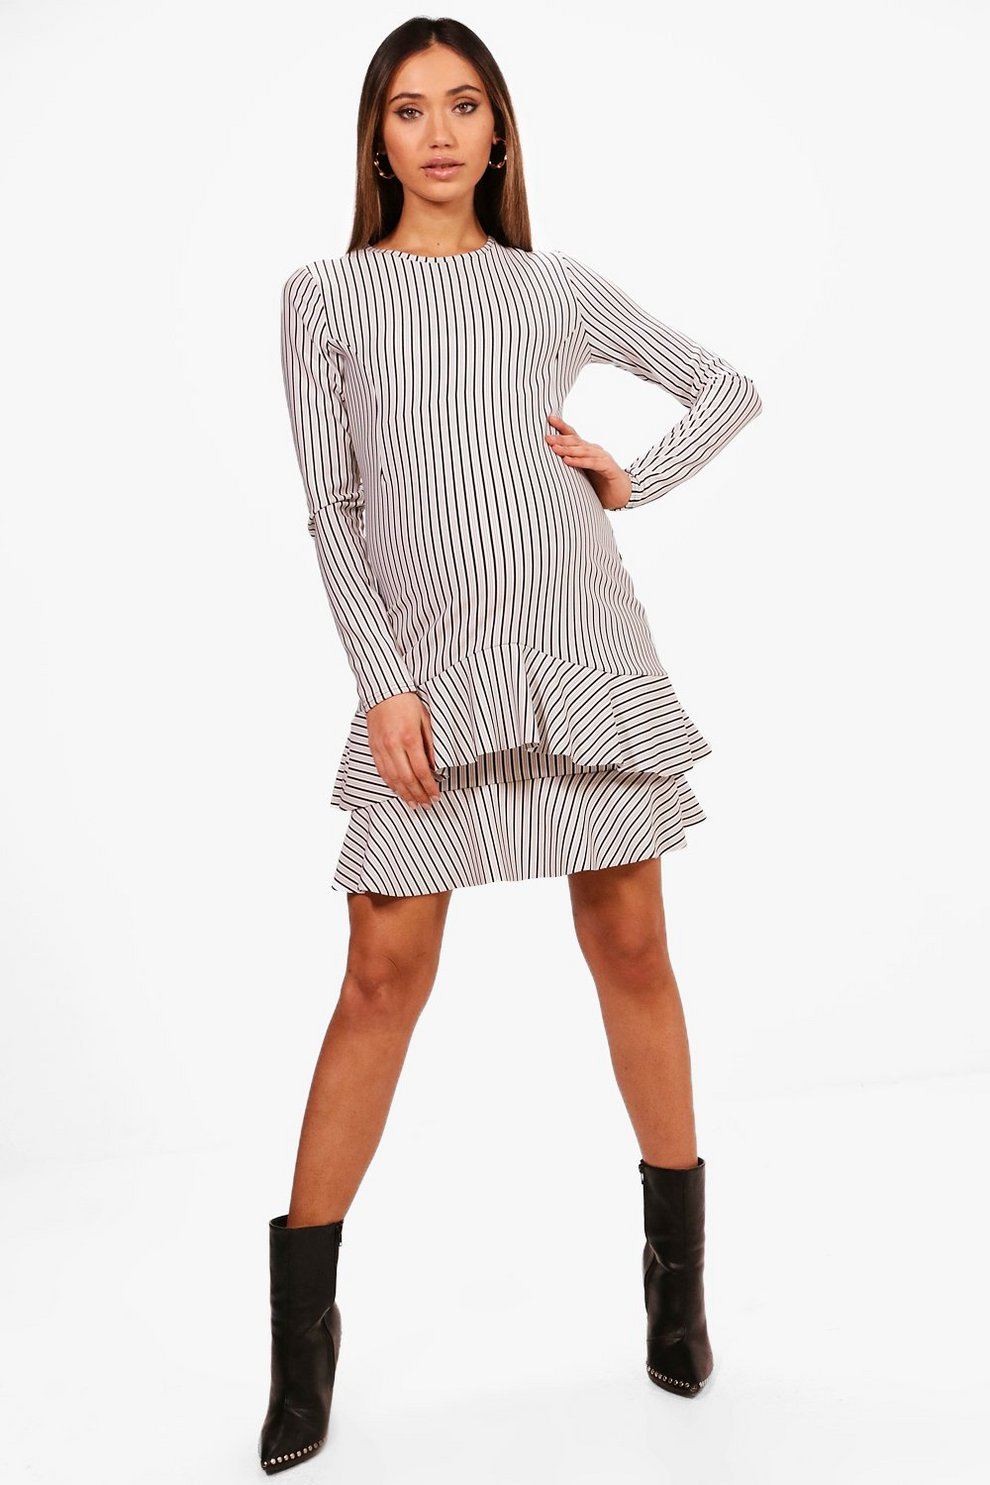 Shop For For Sale Sale Best Store To Get Boohoo Maternity Ruffle Skater Dress Order Sale Online 8Svj0CW6